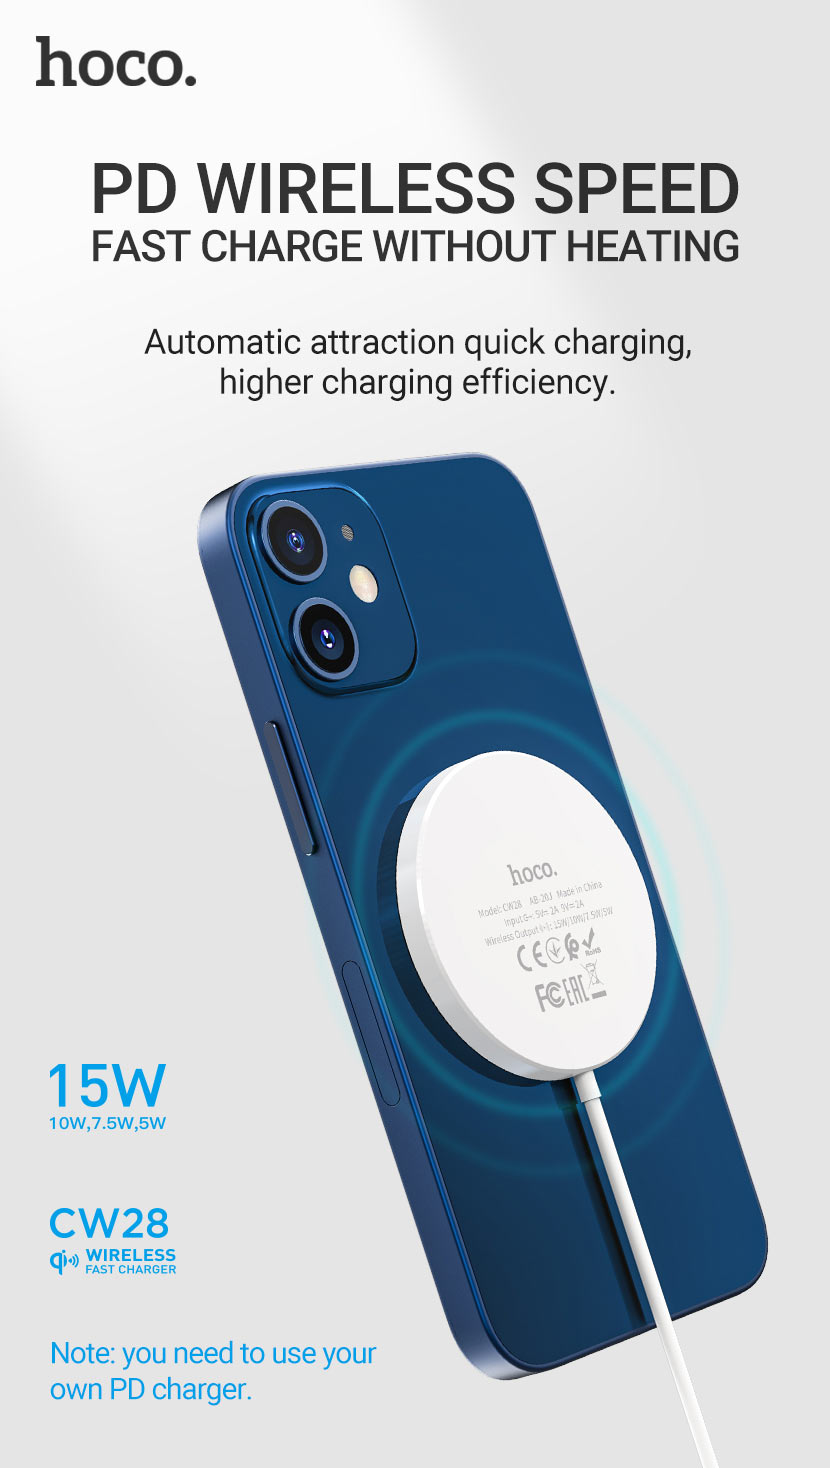 hoco news cw28 original series magnetic wireless fast charger pd en